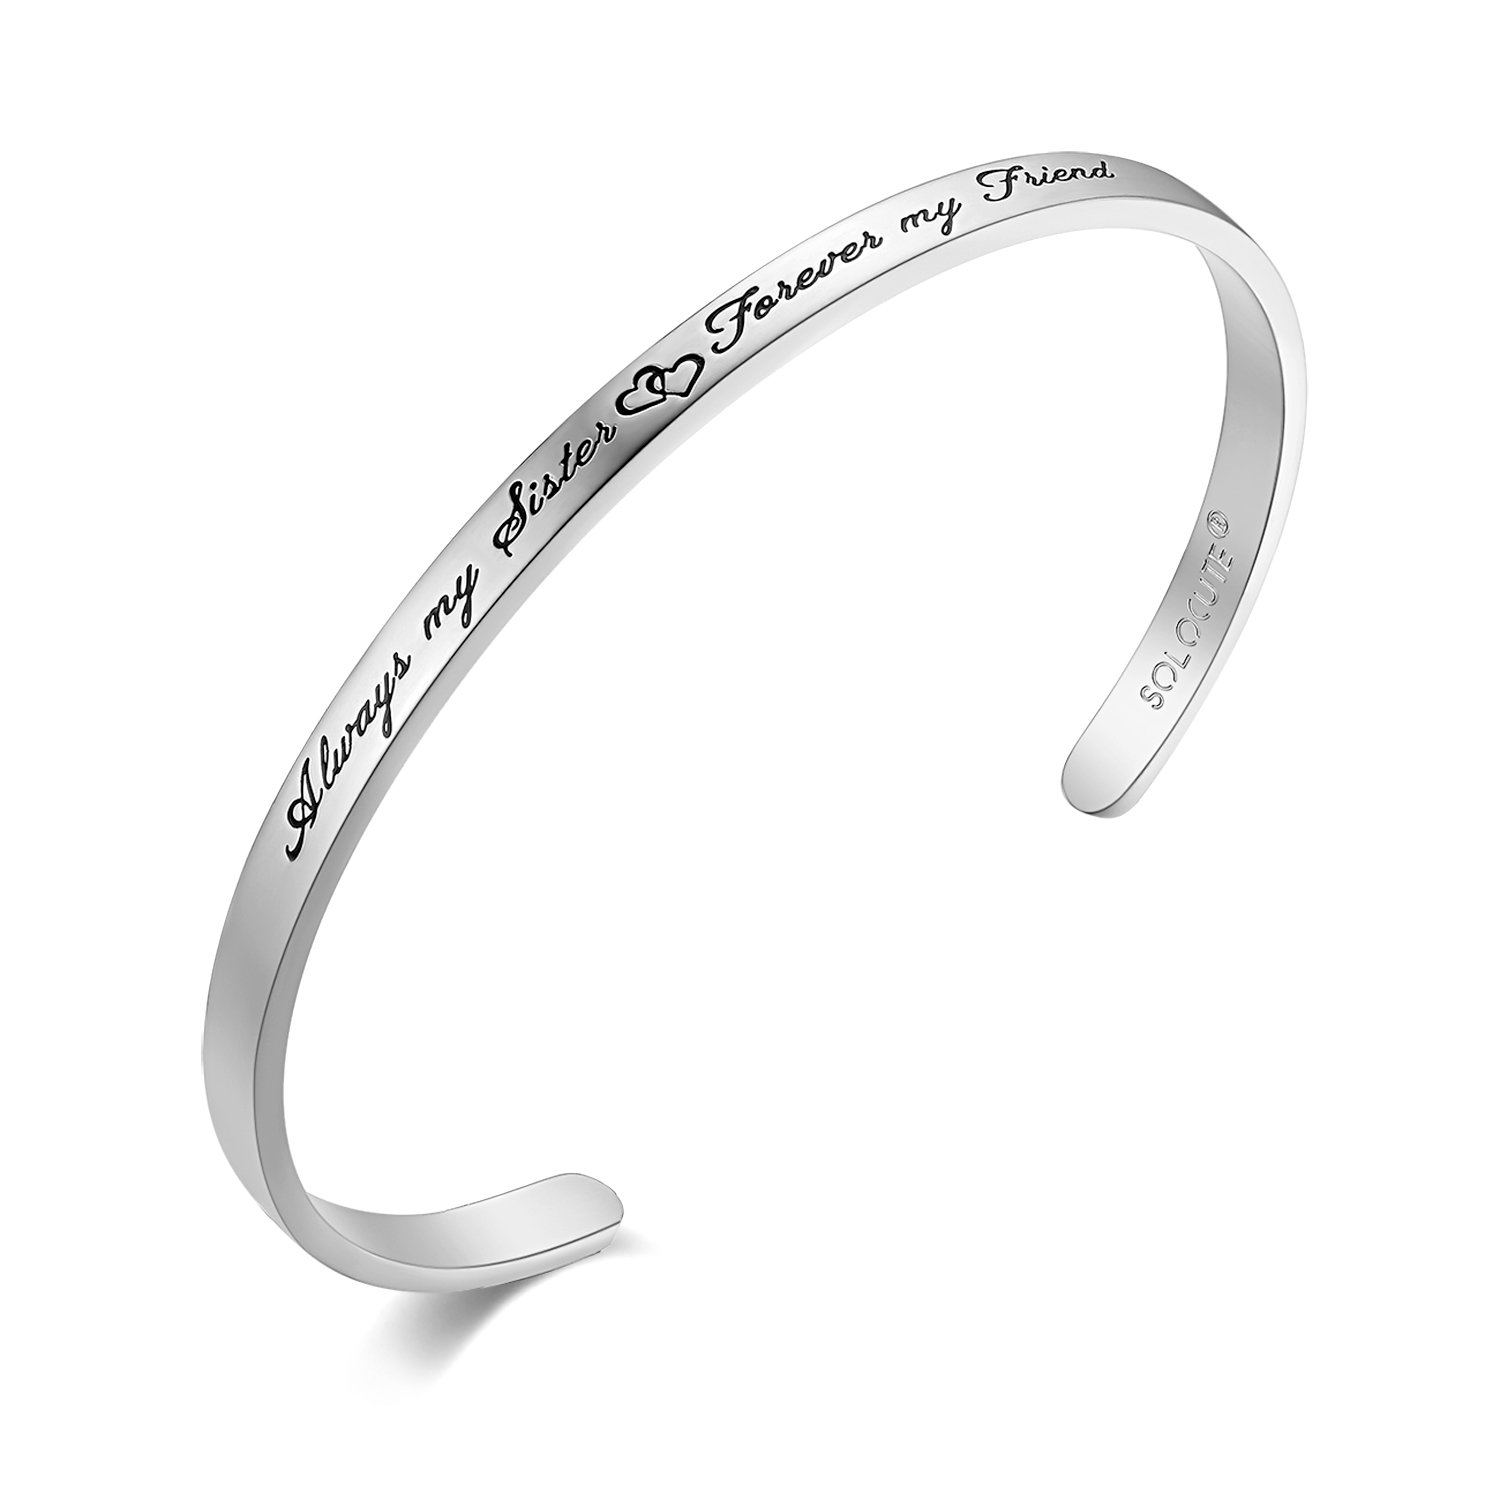 SOLOCUTE Cuff Bangle Bracelet Engraved Always My Sister Forever My Friend Inspirational Jewelry SC030RG